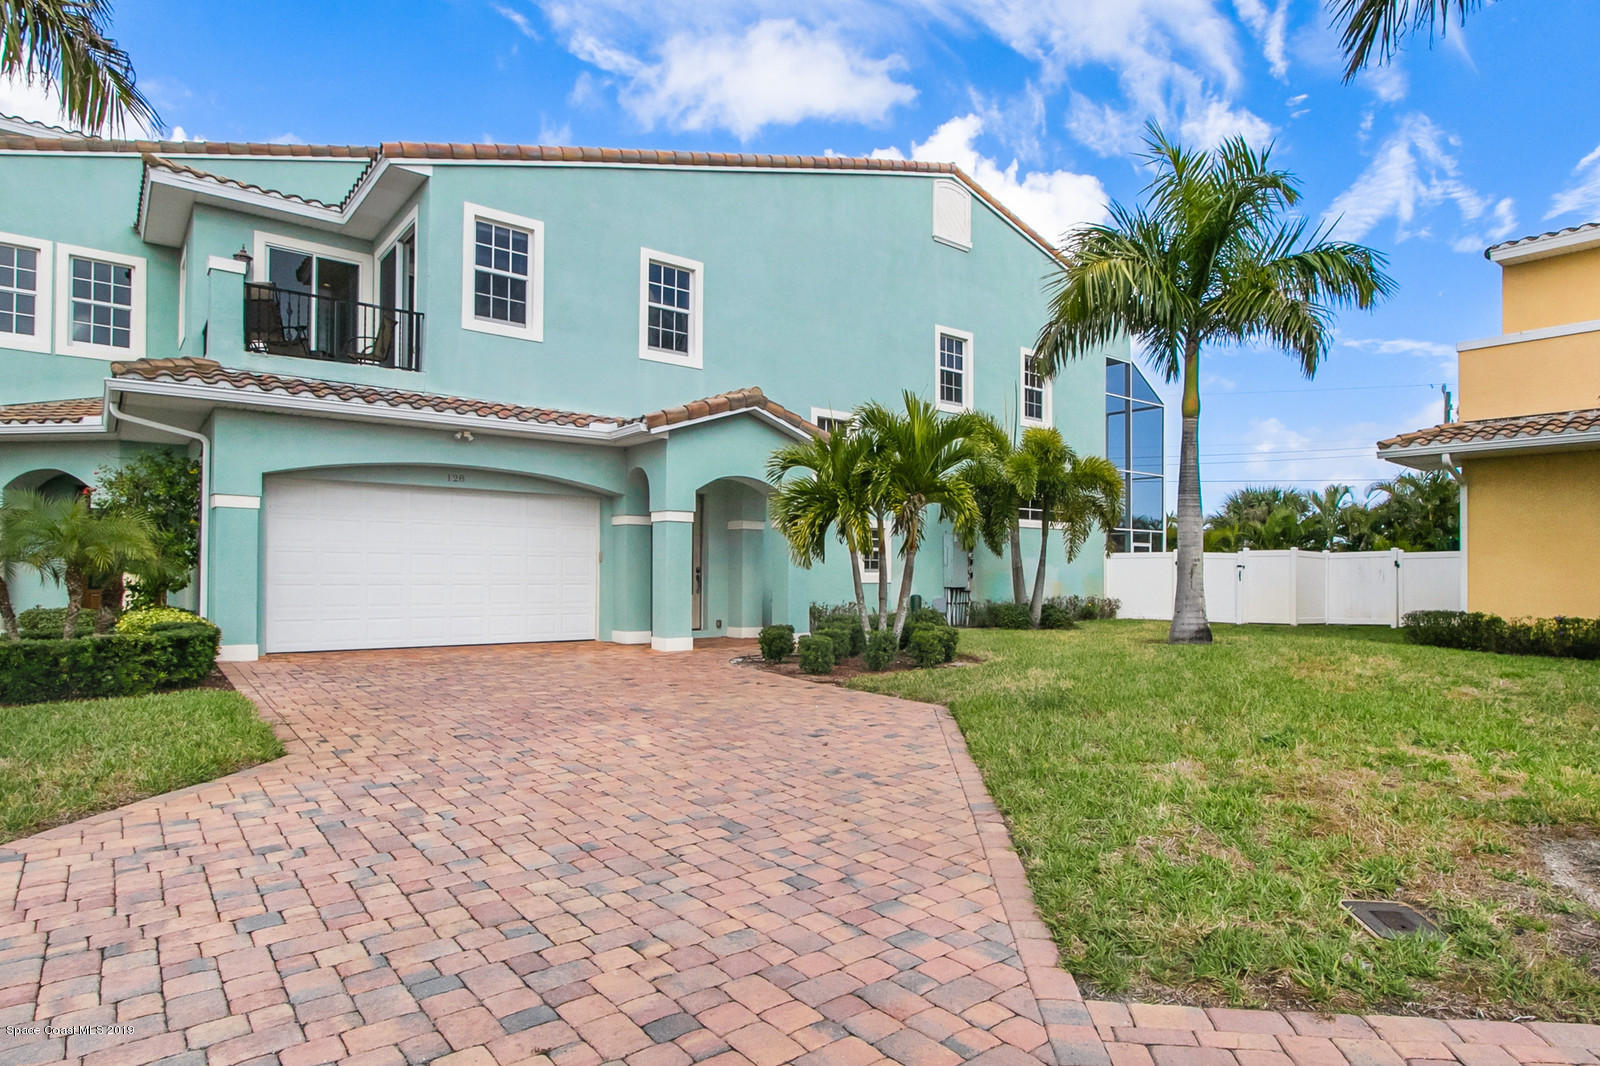 Single Family Home for Rent at 128 Mediterranean 128 Mediterranean Indian Harbour Beach, Florida 32937 United States